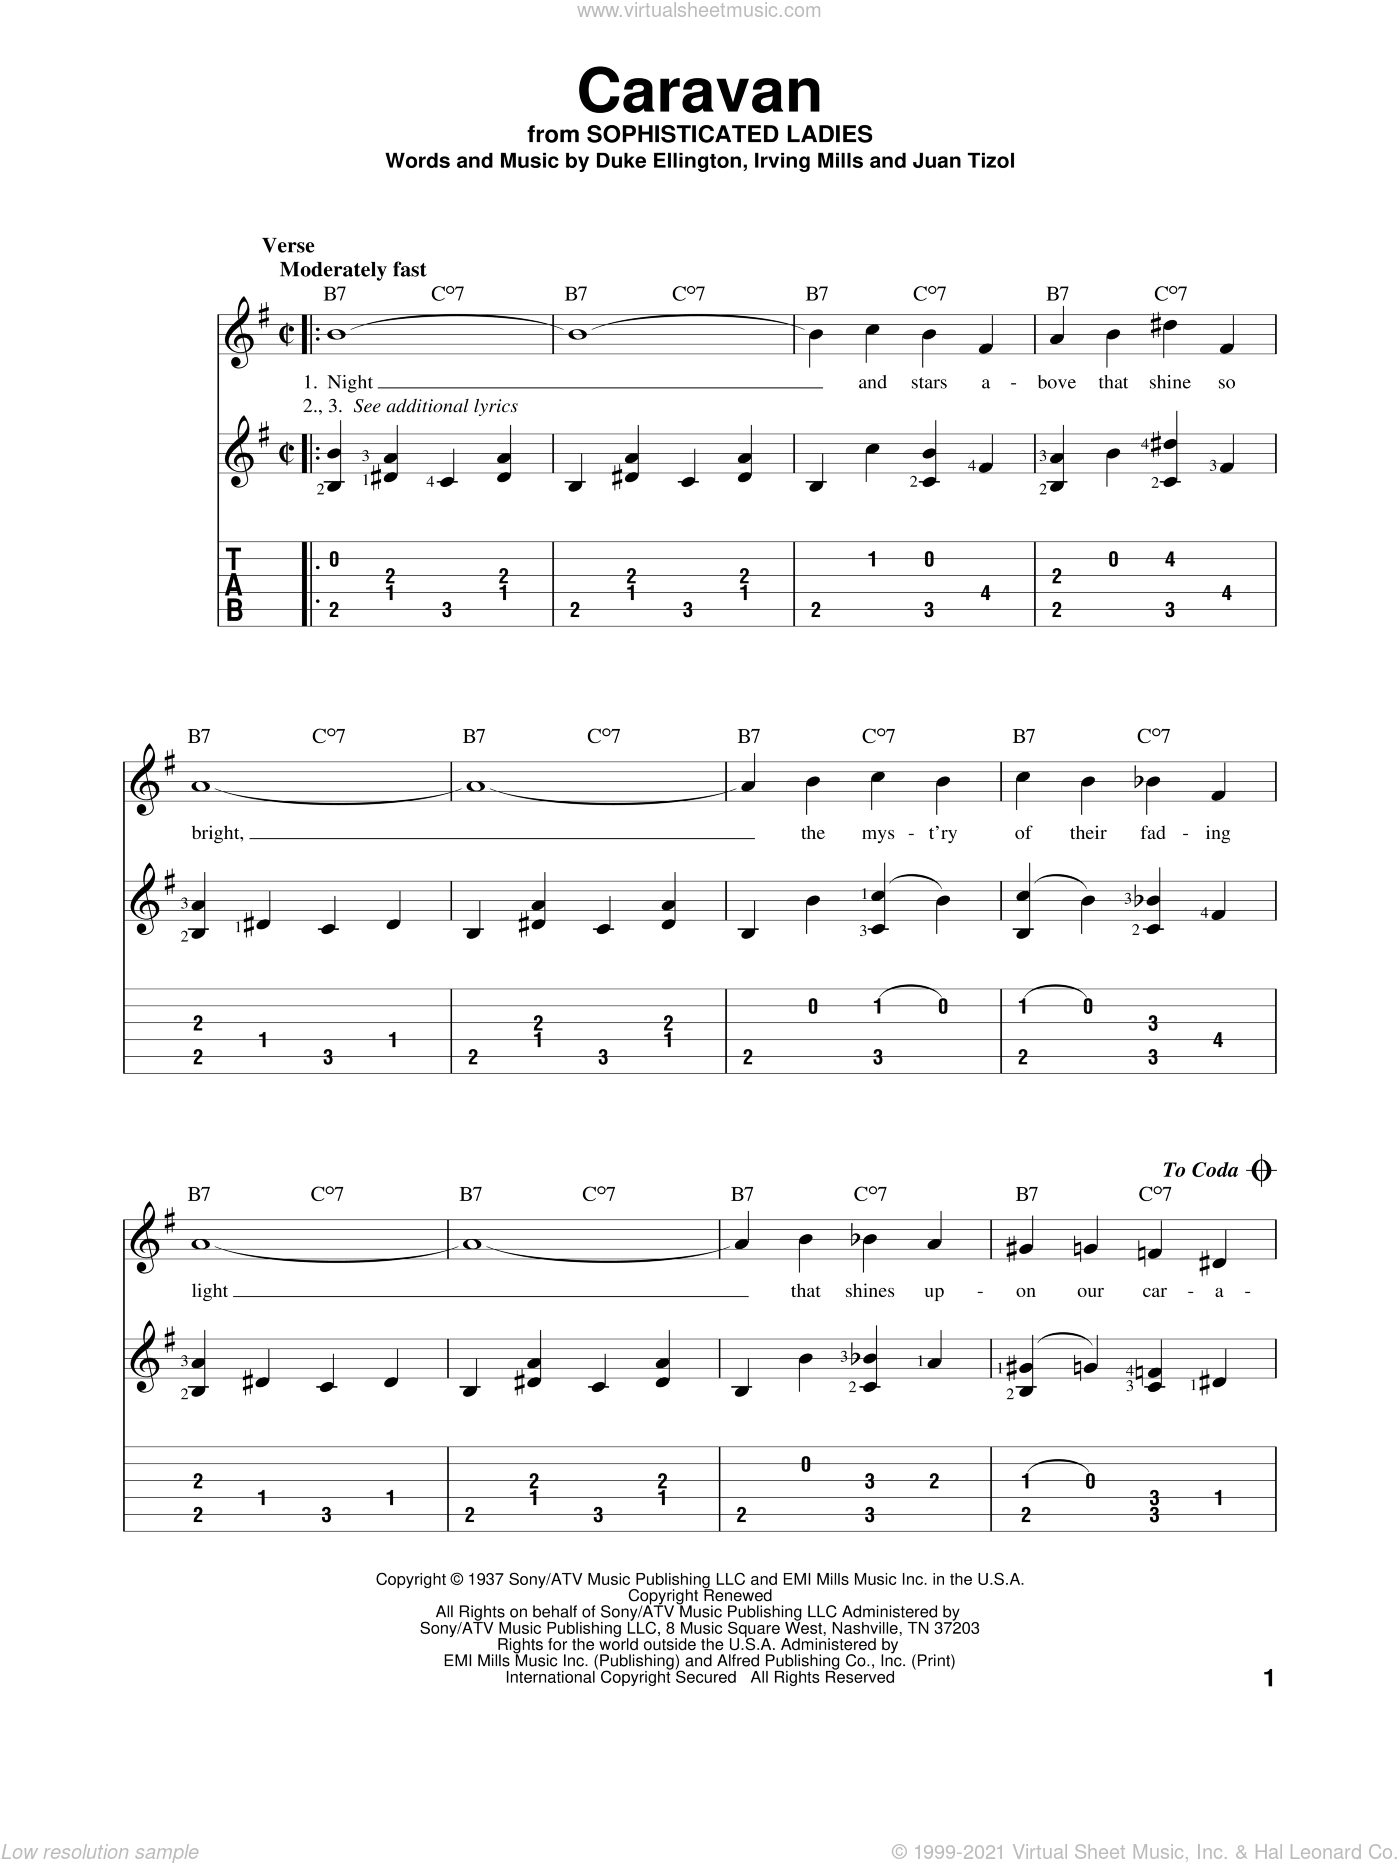 Caravan sheet music for guitar solo by Juan Tizol, Billy Eckstine, Ralph Marterie, Duke Ellington and Irving Mills. Score Image Preview.